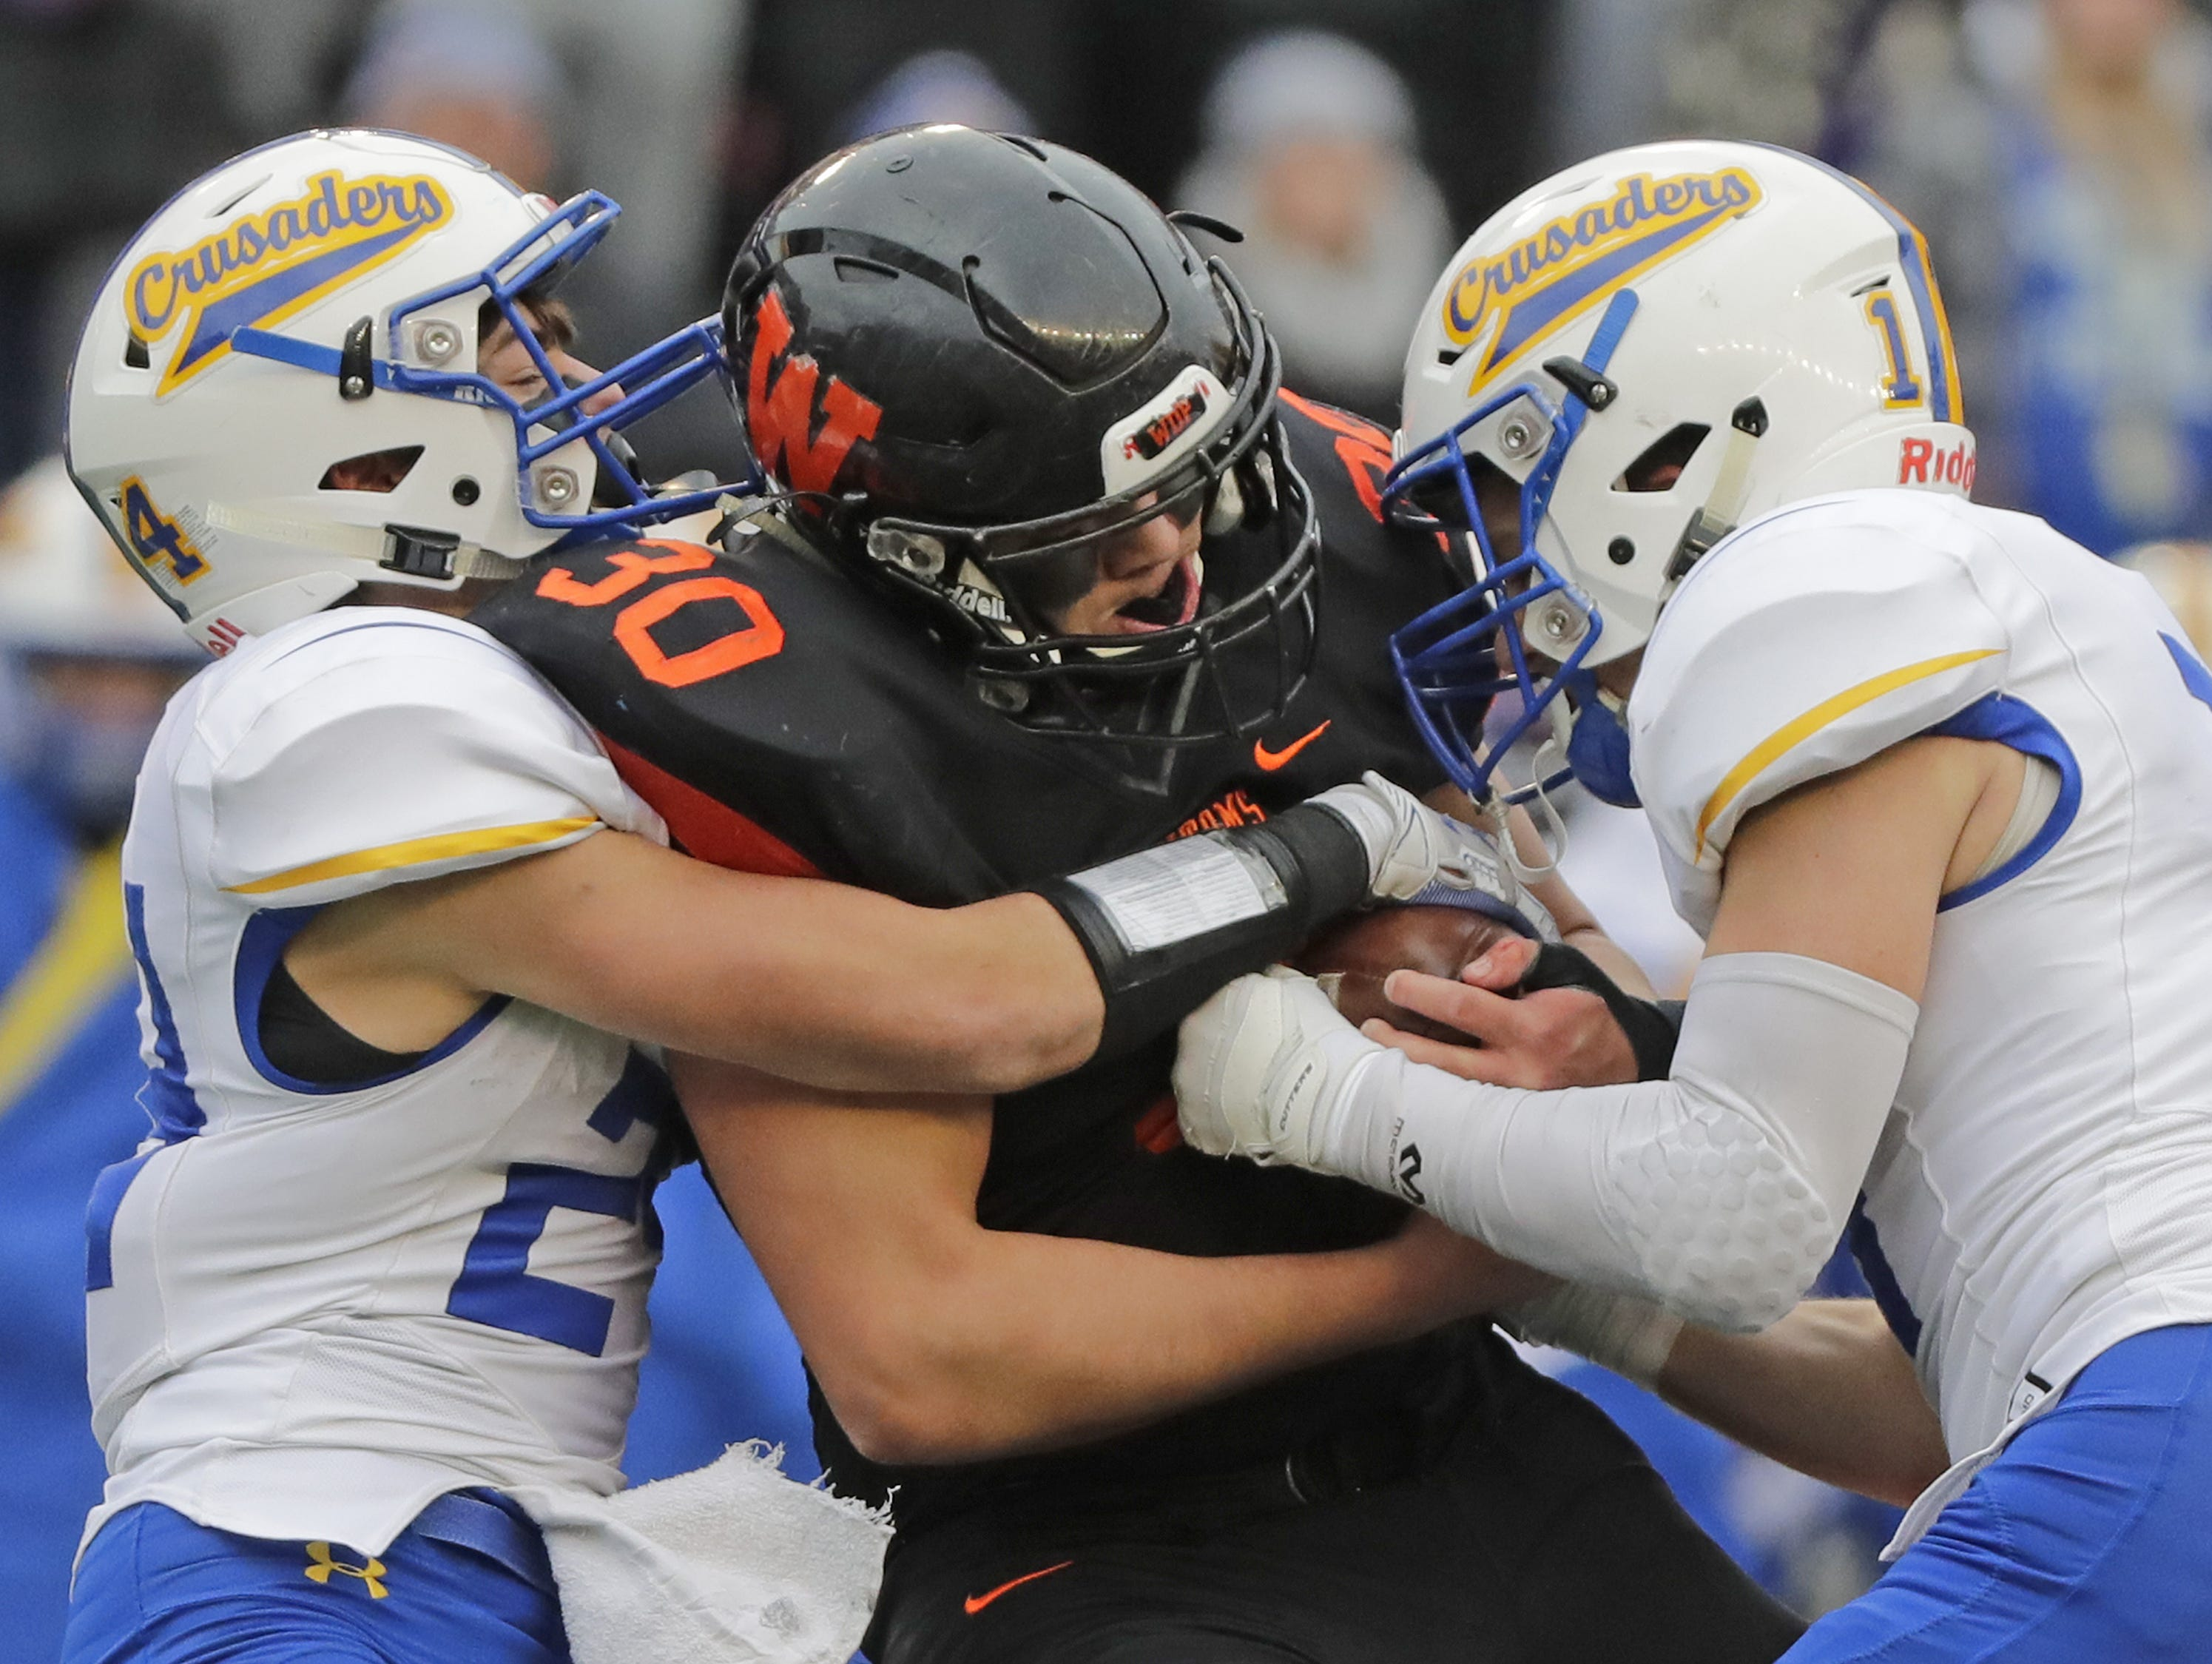 West De Pere's Cody Cavil (30) rushes against Catholic Memorial in the WIAA Division 3 championship game at Camp Randall Stadium on Friday, November 16, 2018 in Madison, Wis.